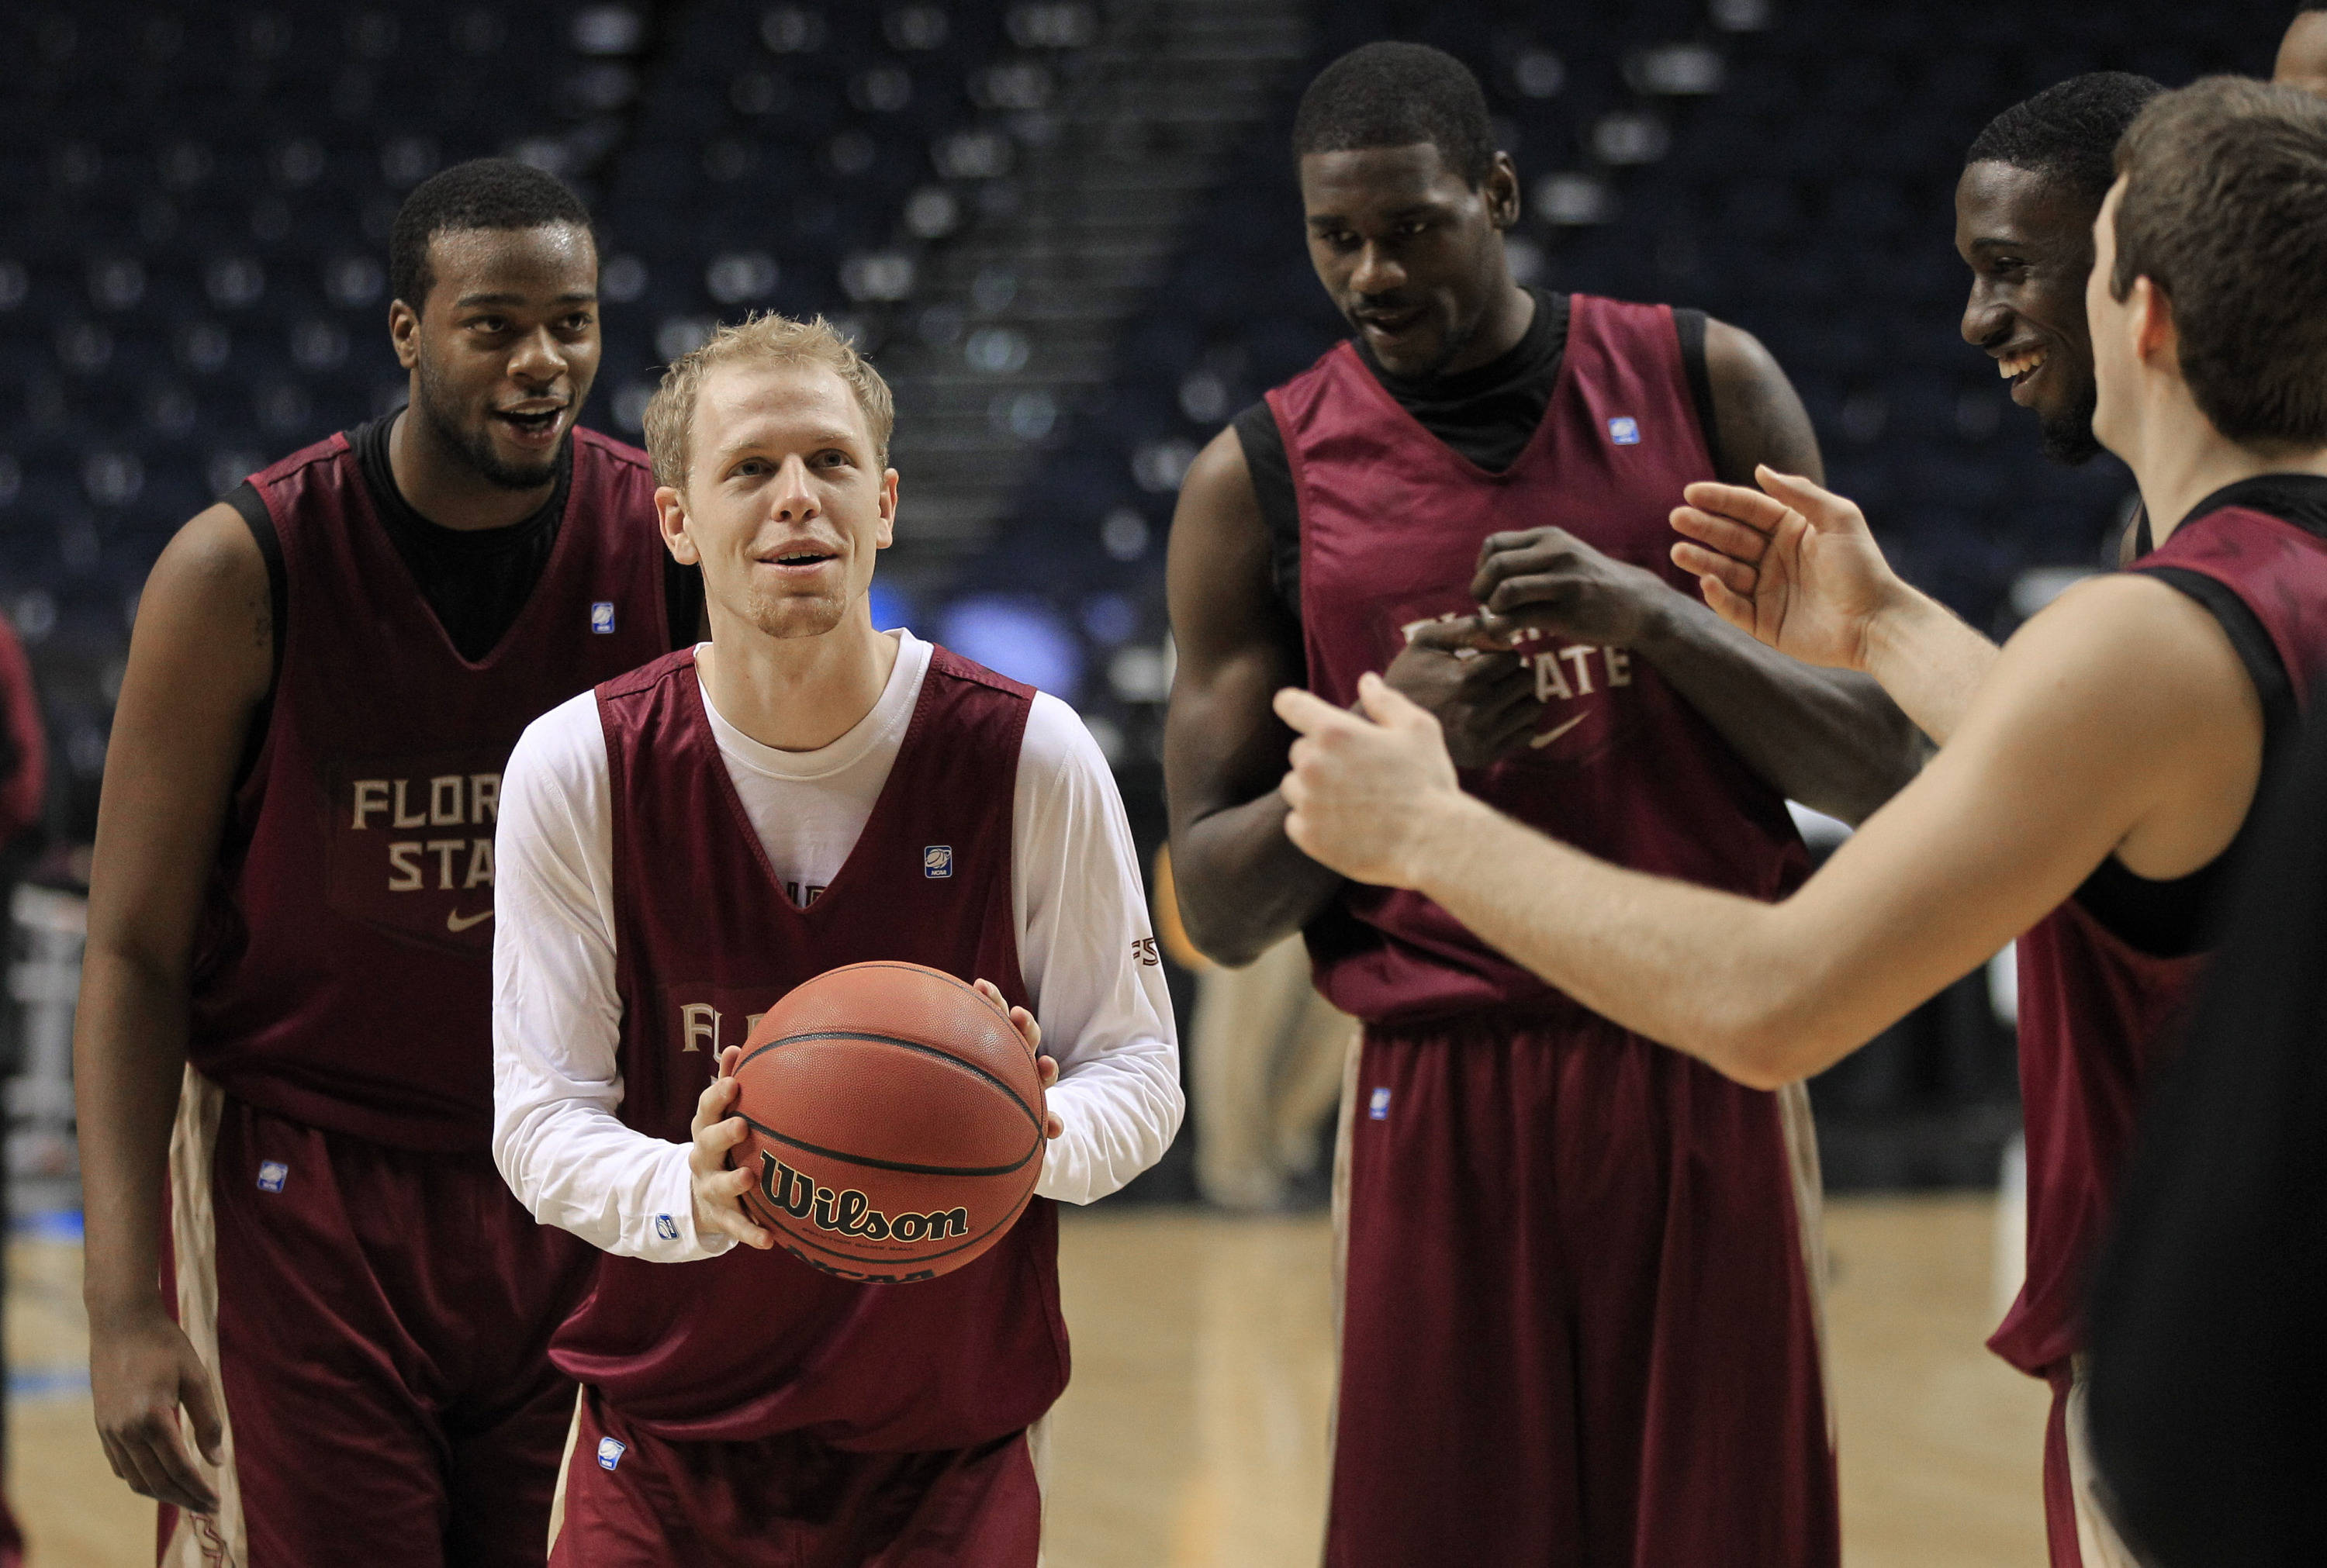 Florida State guard Joey Moreau, second from left, shoots a free throw during practice for an NCAA college basketball tournament game on Thursday, March 15, 2012, in Nashville, Tenn. Florida State is scheduled to play St. Bonaventure on Friday. (AP Photo/Mark Humphrey)